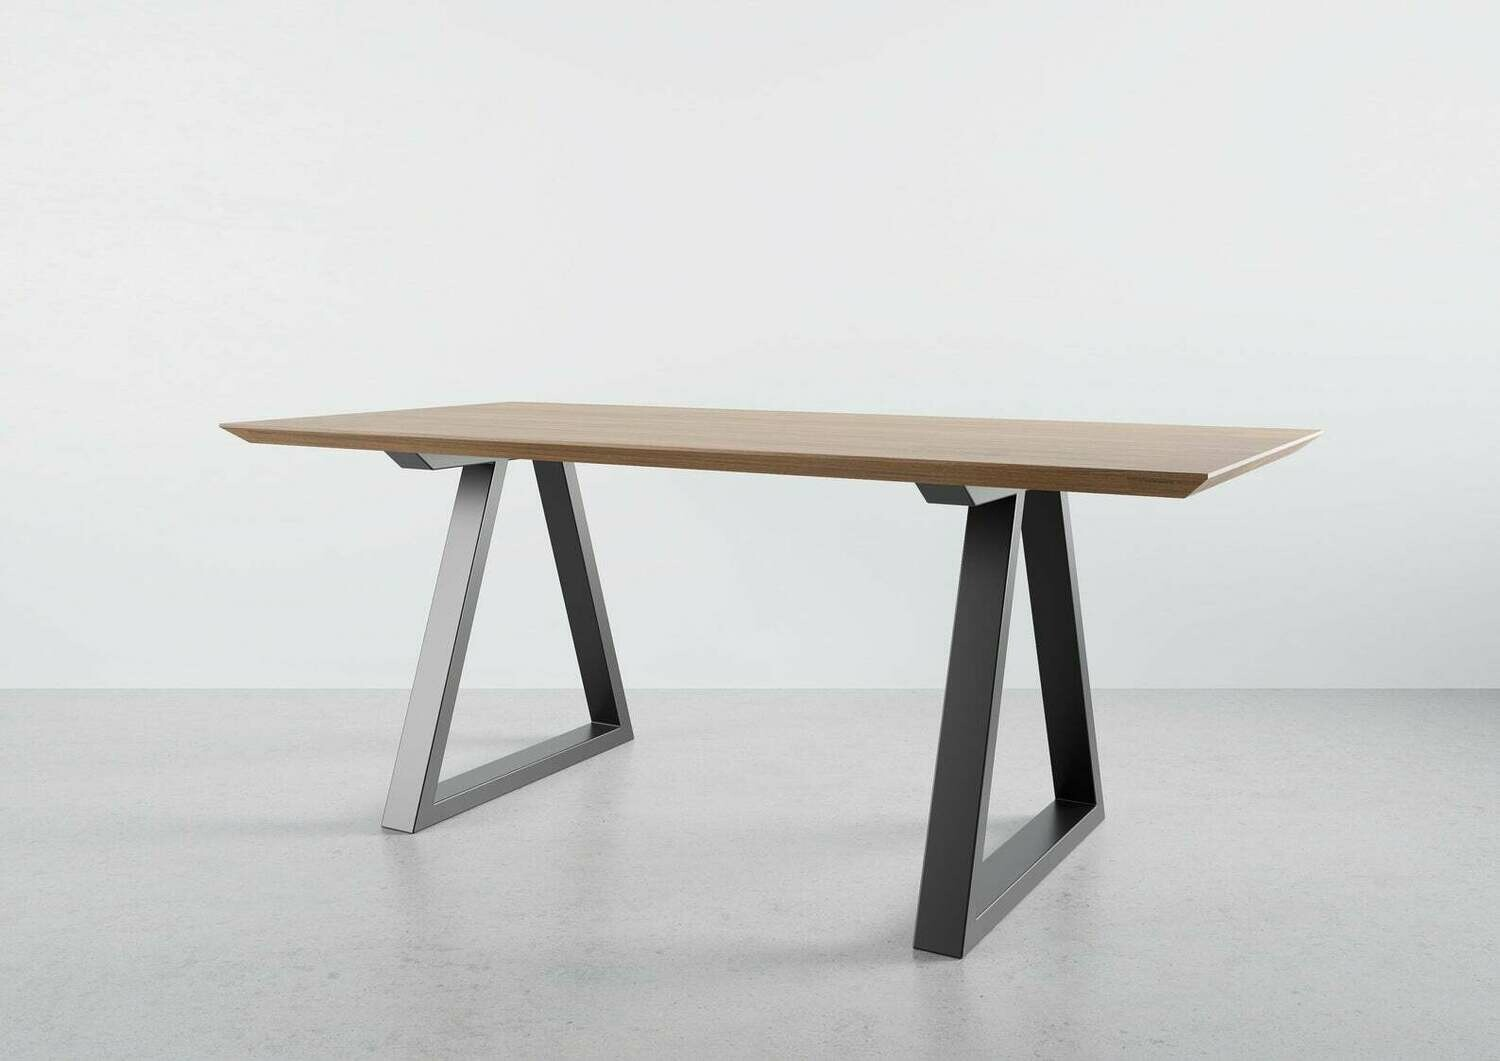 Metal Dining Table Legs (set of 2) triangle-shape. Modern Steel Table Legs. Industrial Table Base. Iron Legs for Live Edge. [D015]